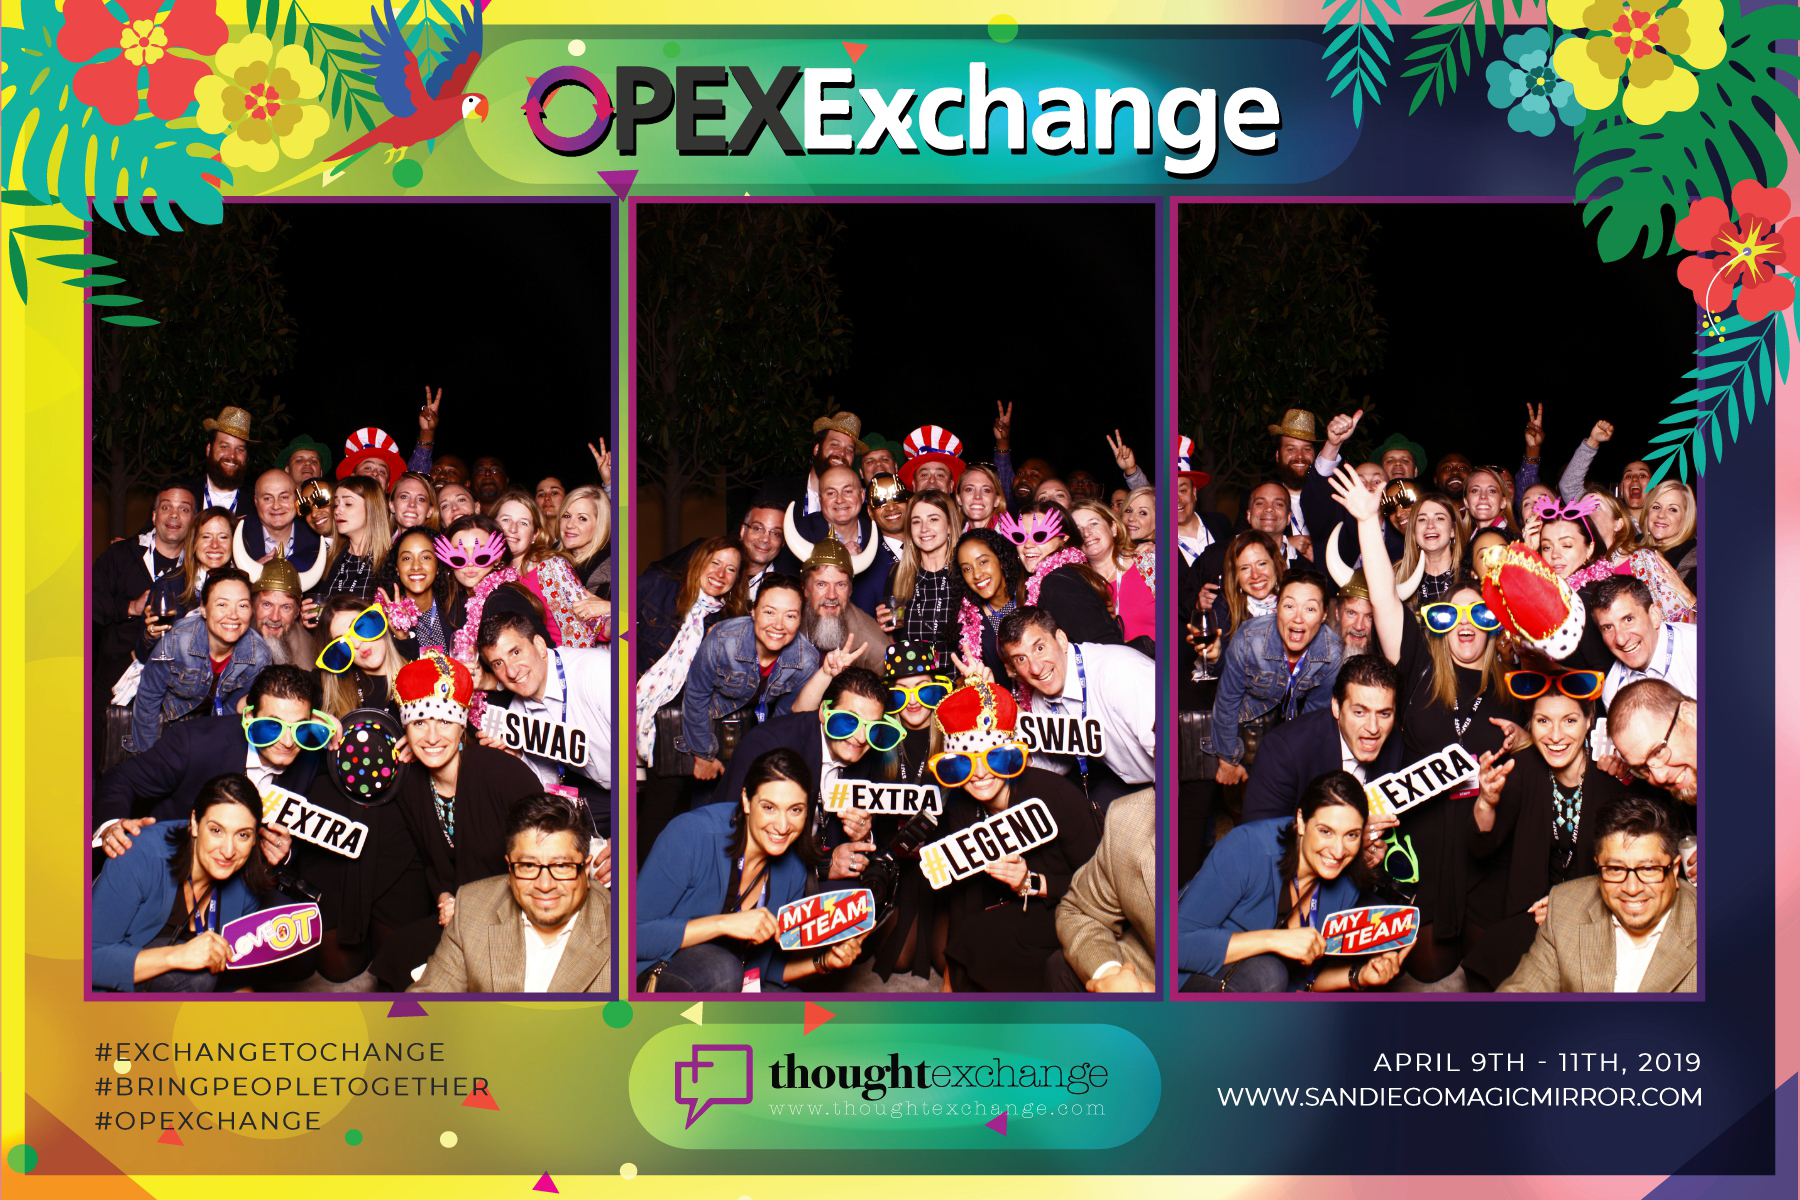 San Diego Magic Mirror Photobooth OPEX Exchange Conference Party at the Westin Inn in Carlsbad, CA 2019